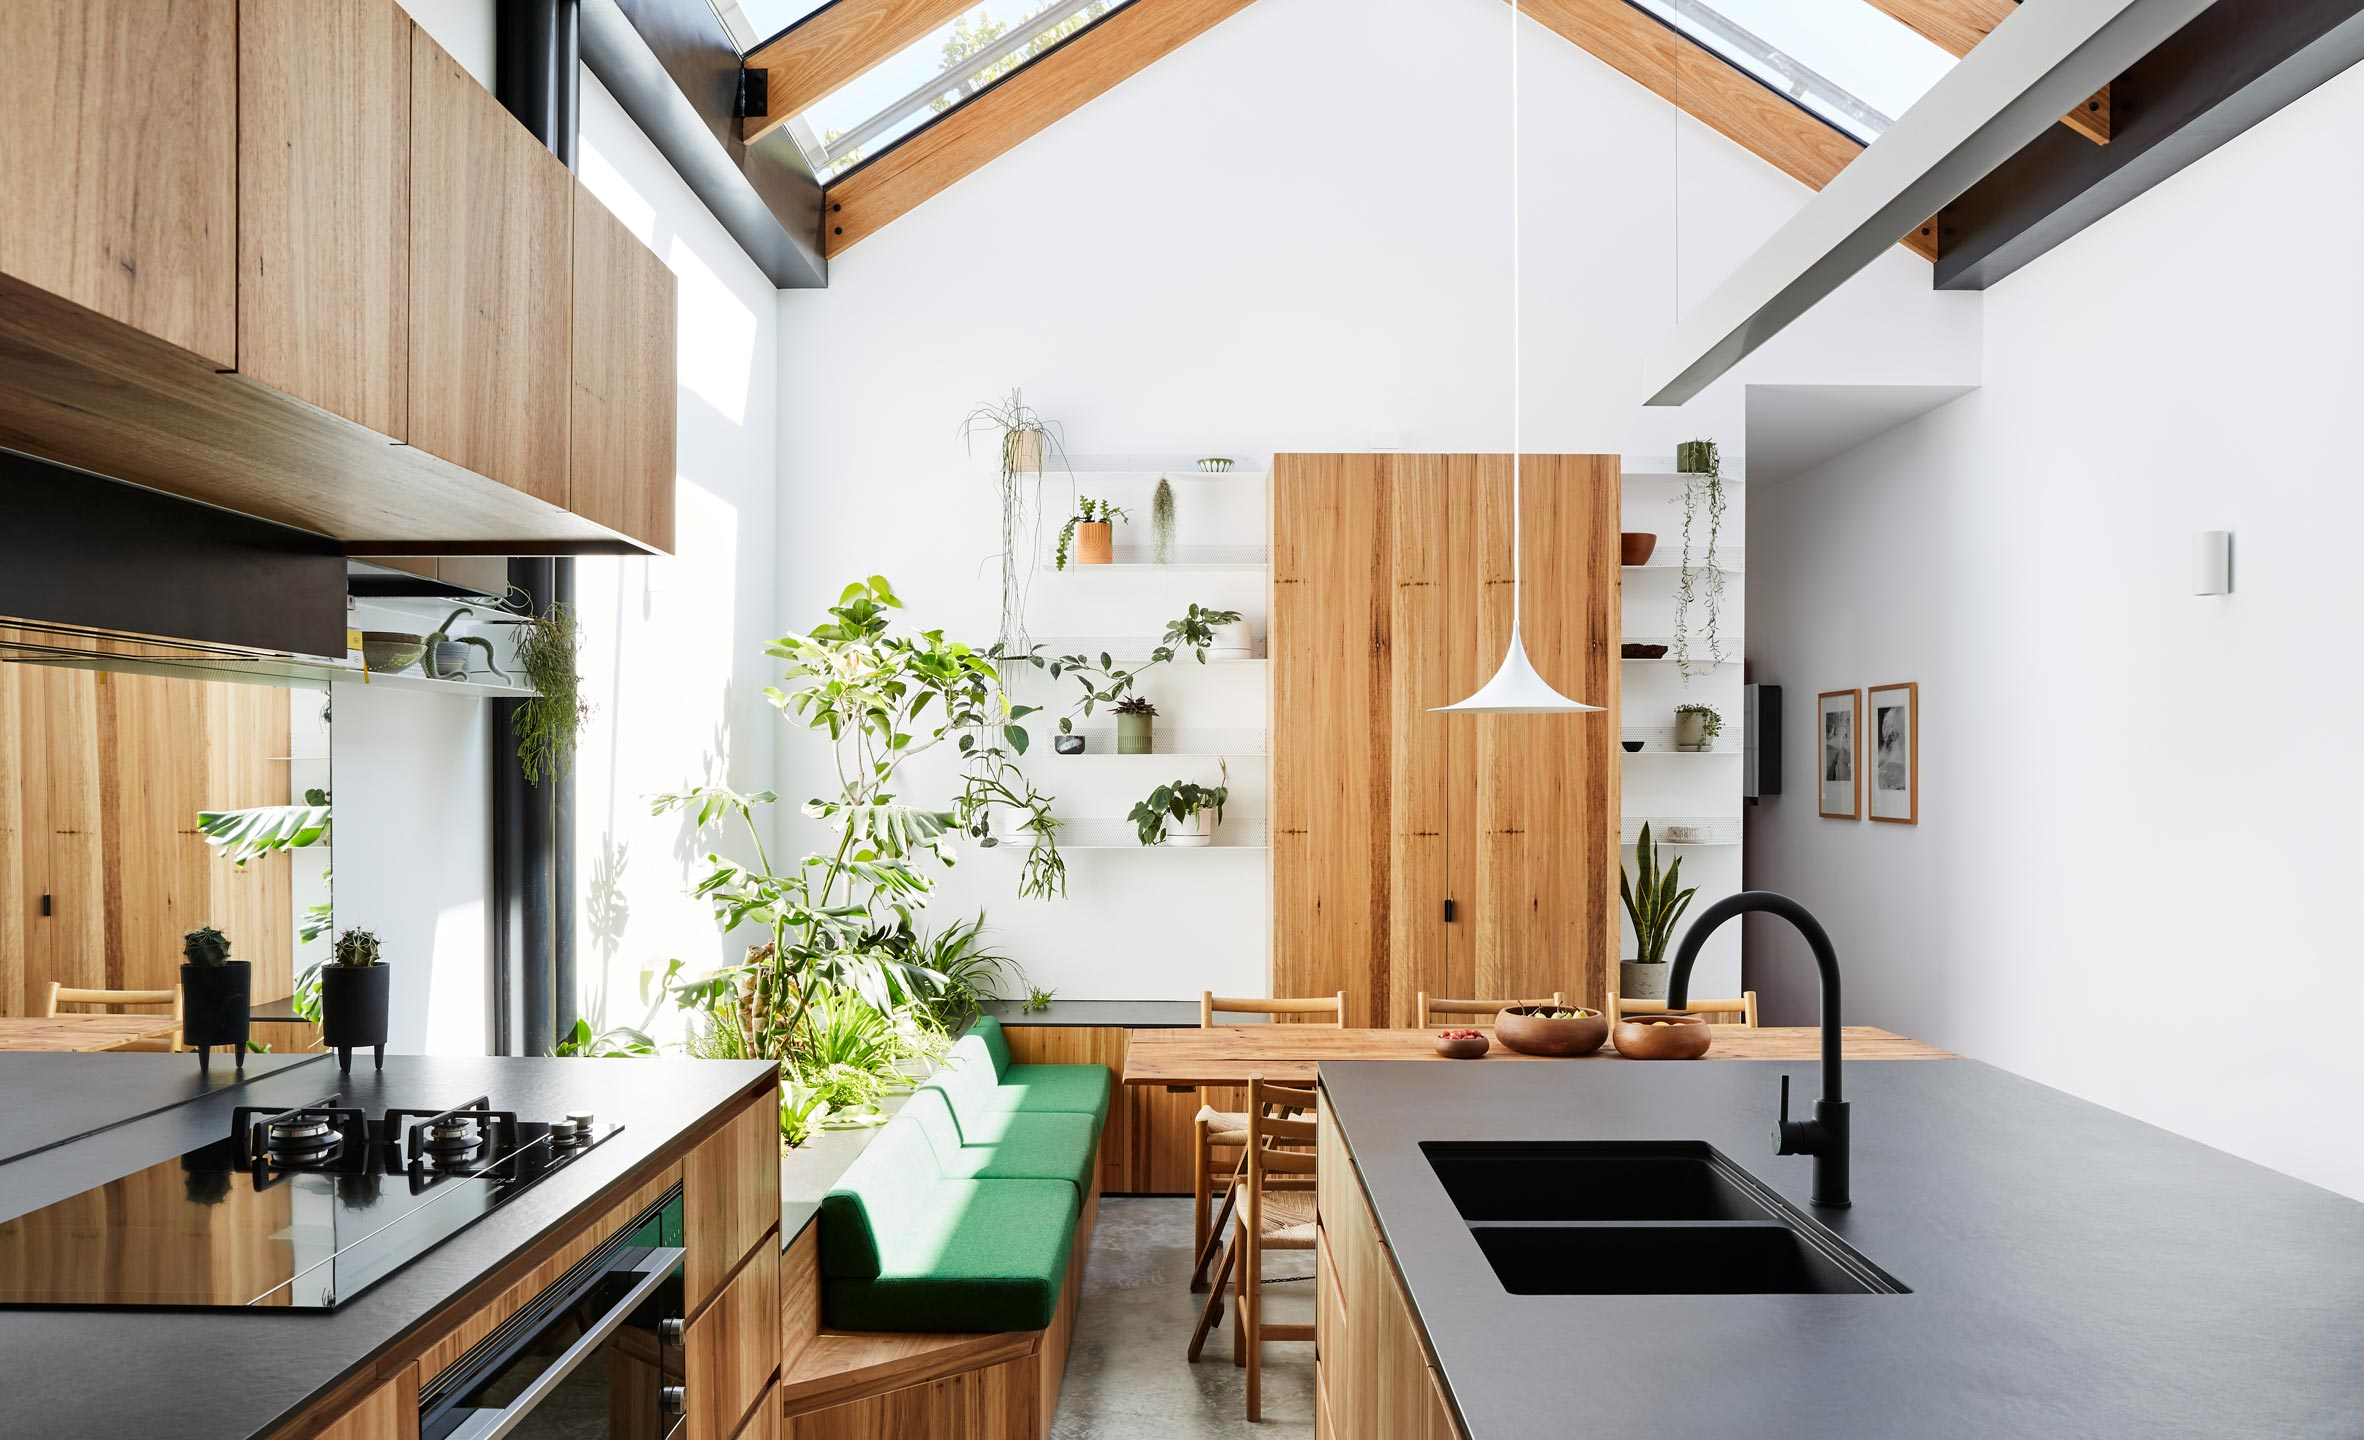 A white kitchen with plants and wooden cabinetry